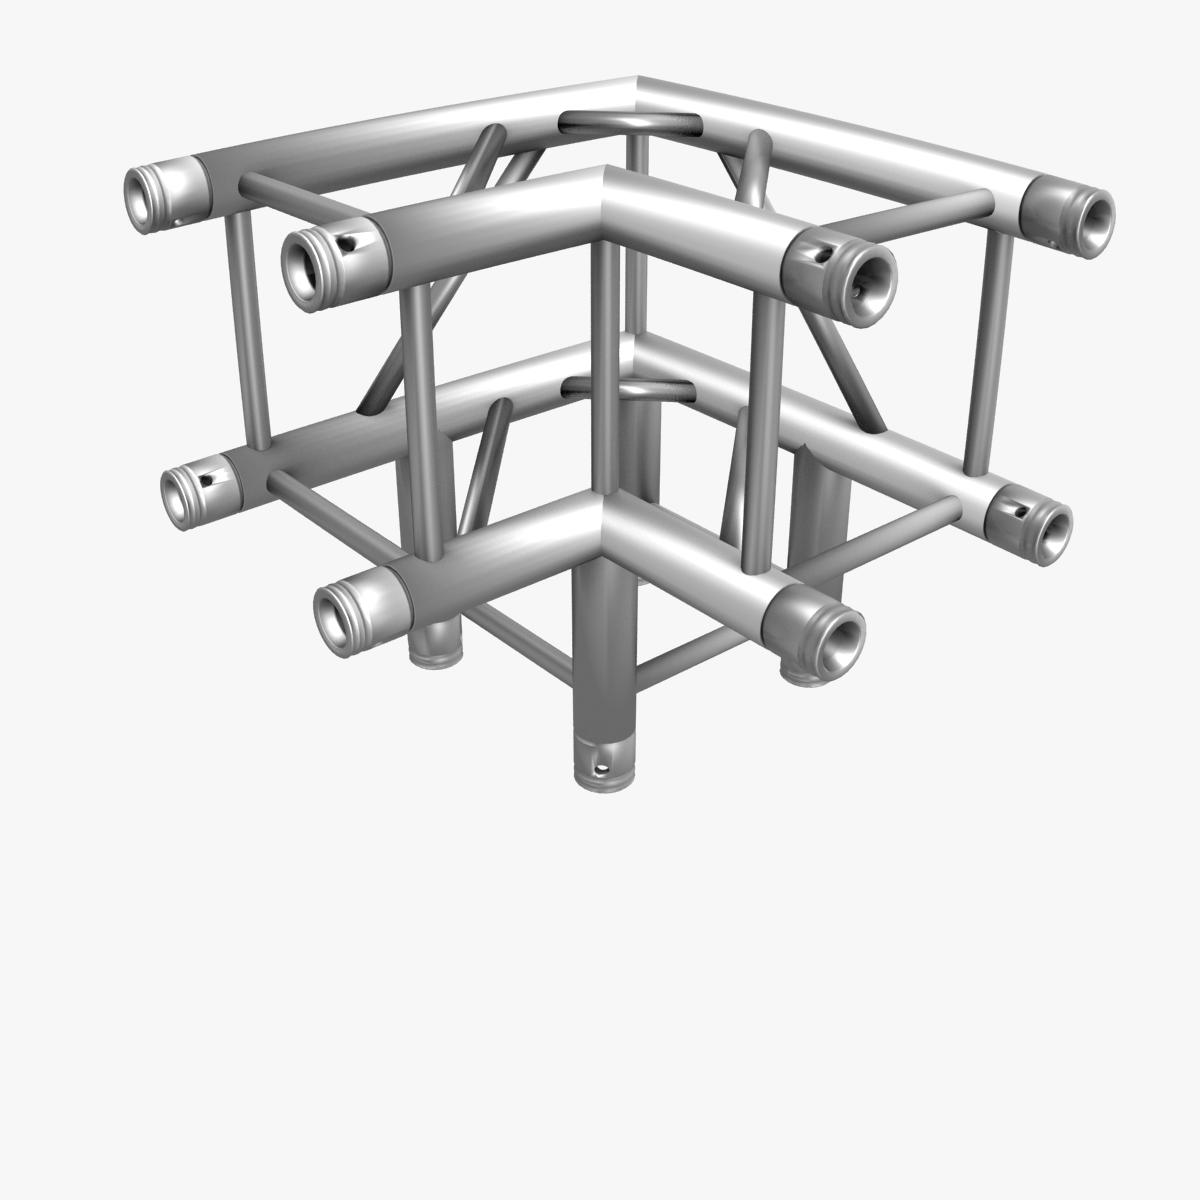 square light trusses (collection 50 modular) 3d model 3ds max dxf fbx c4d dae texture obj 216187